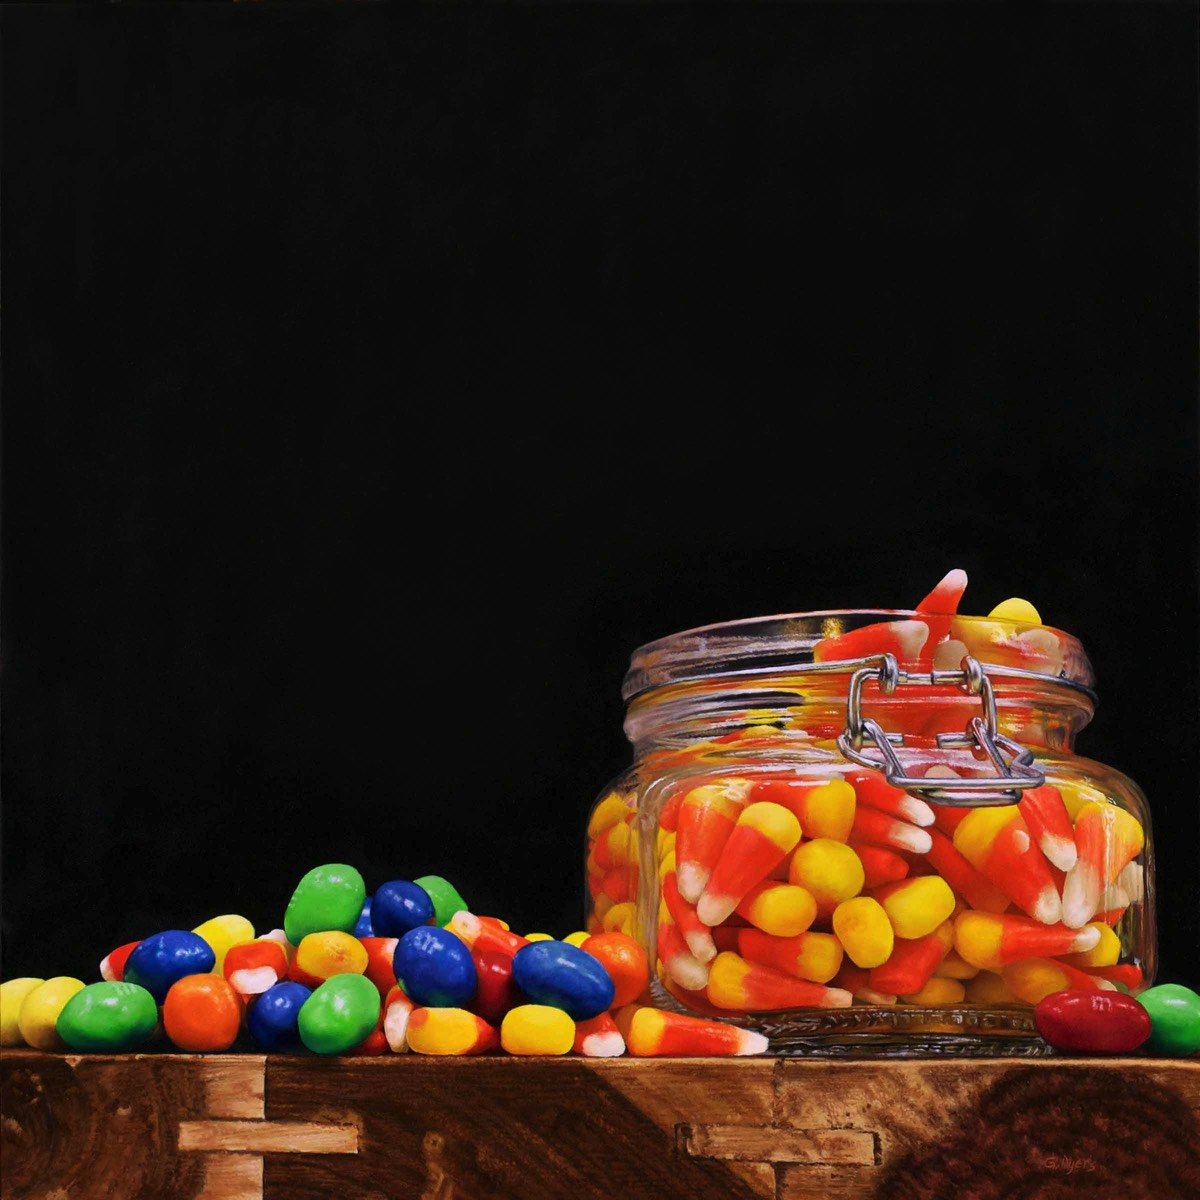 Candy Corn - 16x16 - oil on panel - SOLD